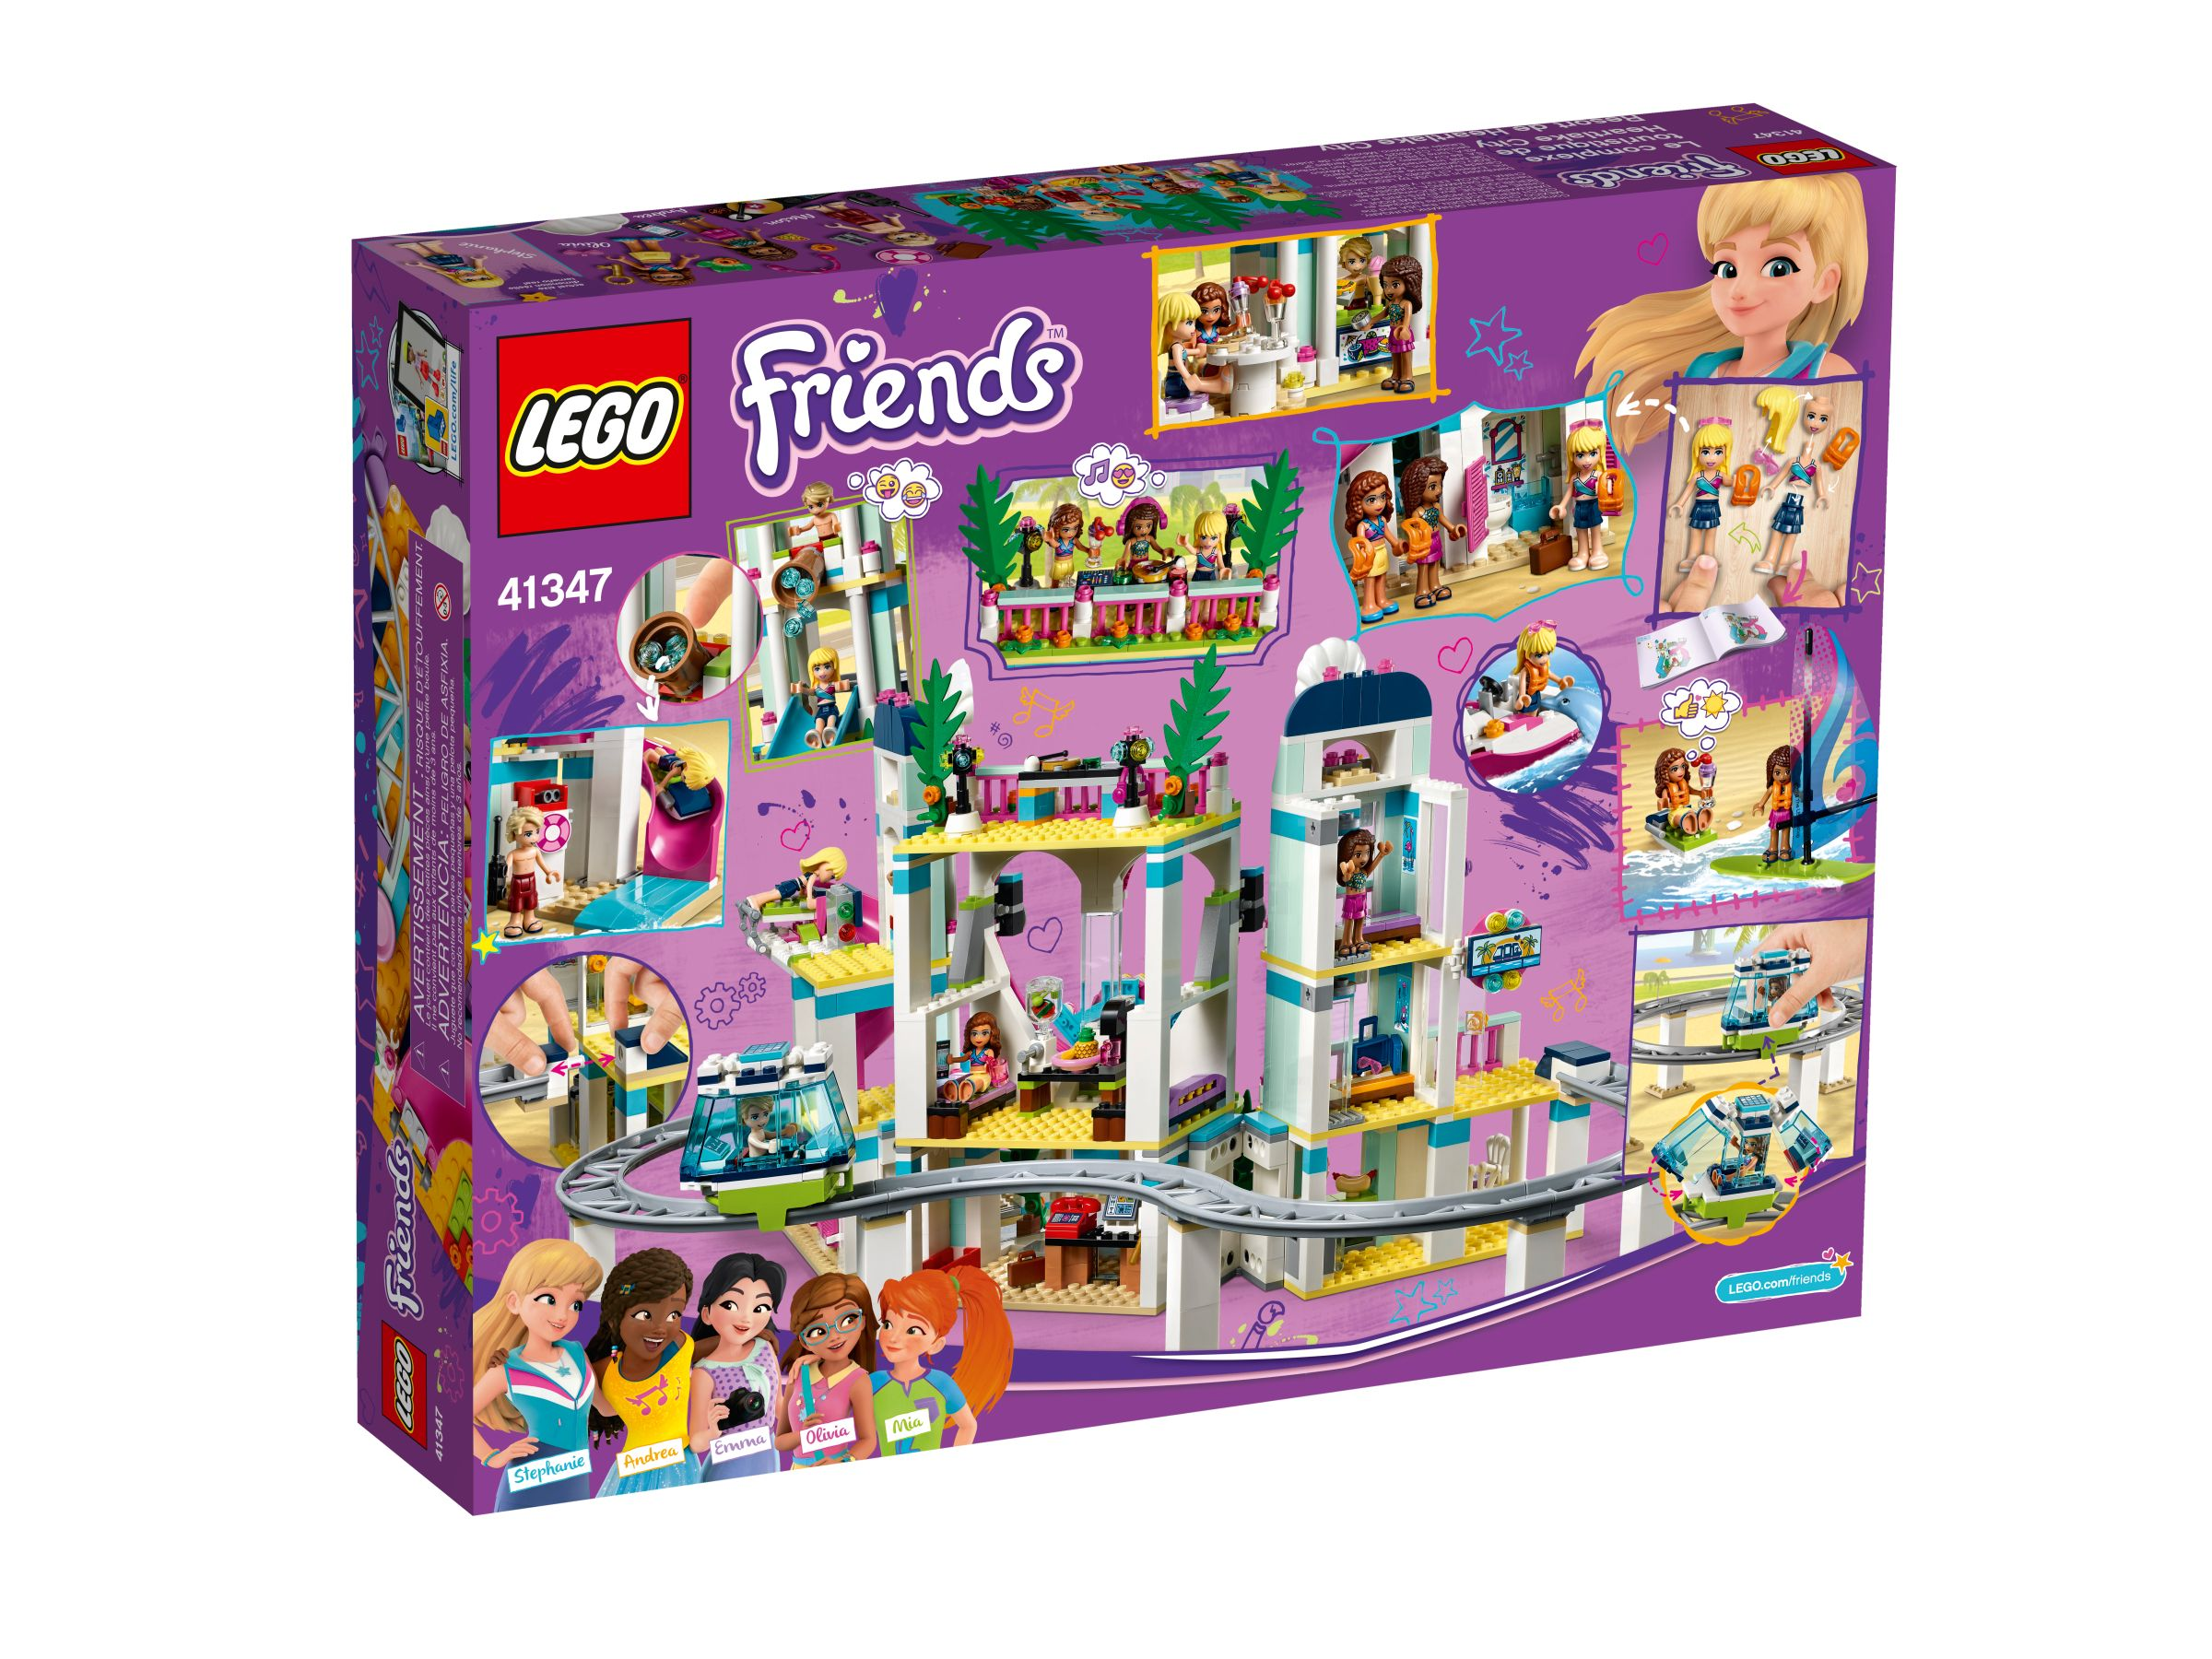 LEGO Friends 41347 Heartlake City Resort LEGO_41347_alt4.jpg